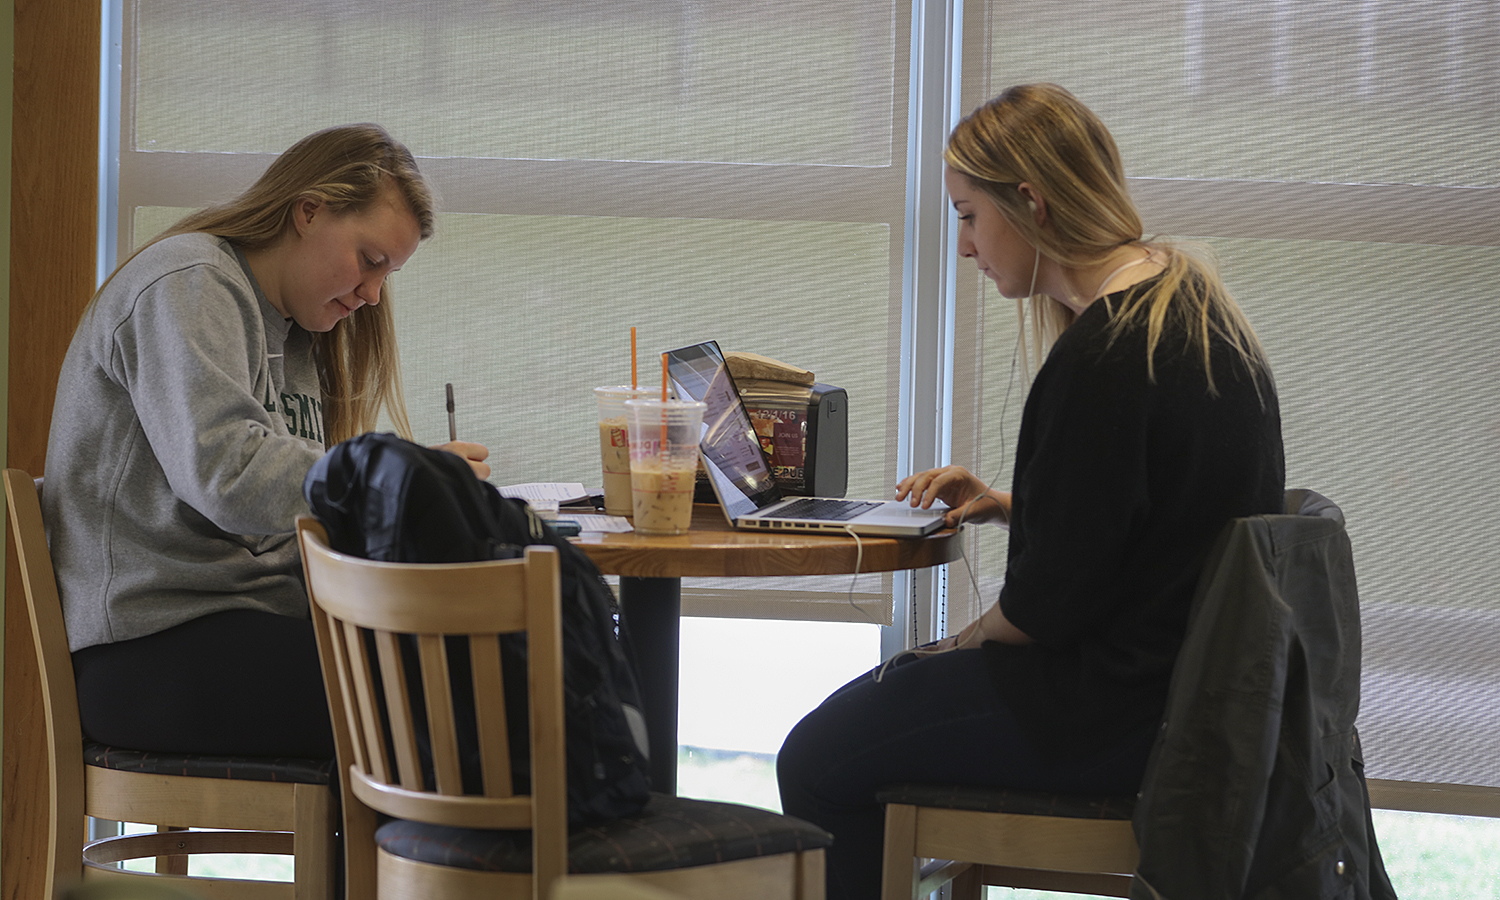 Students Study in Cafe-0055